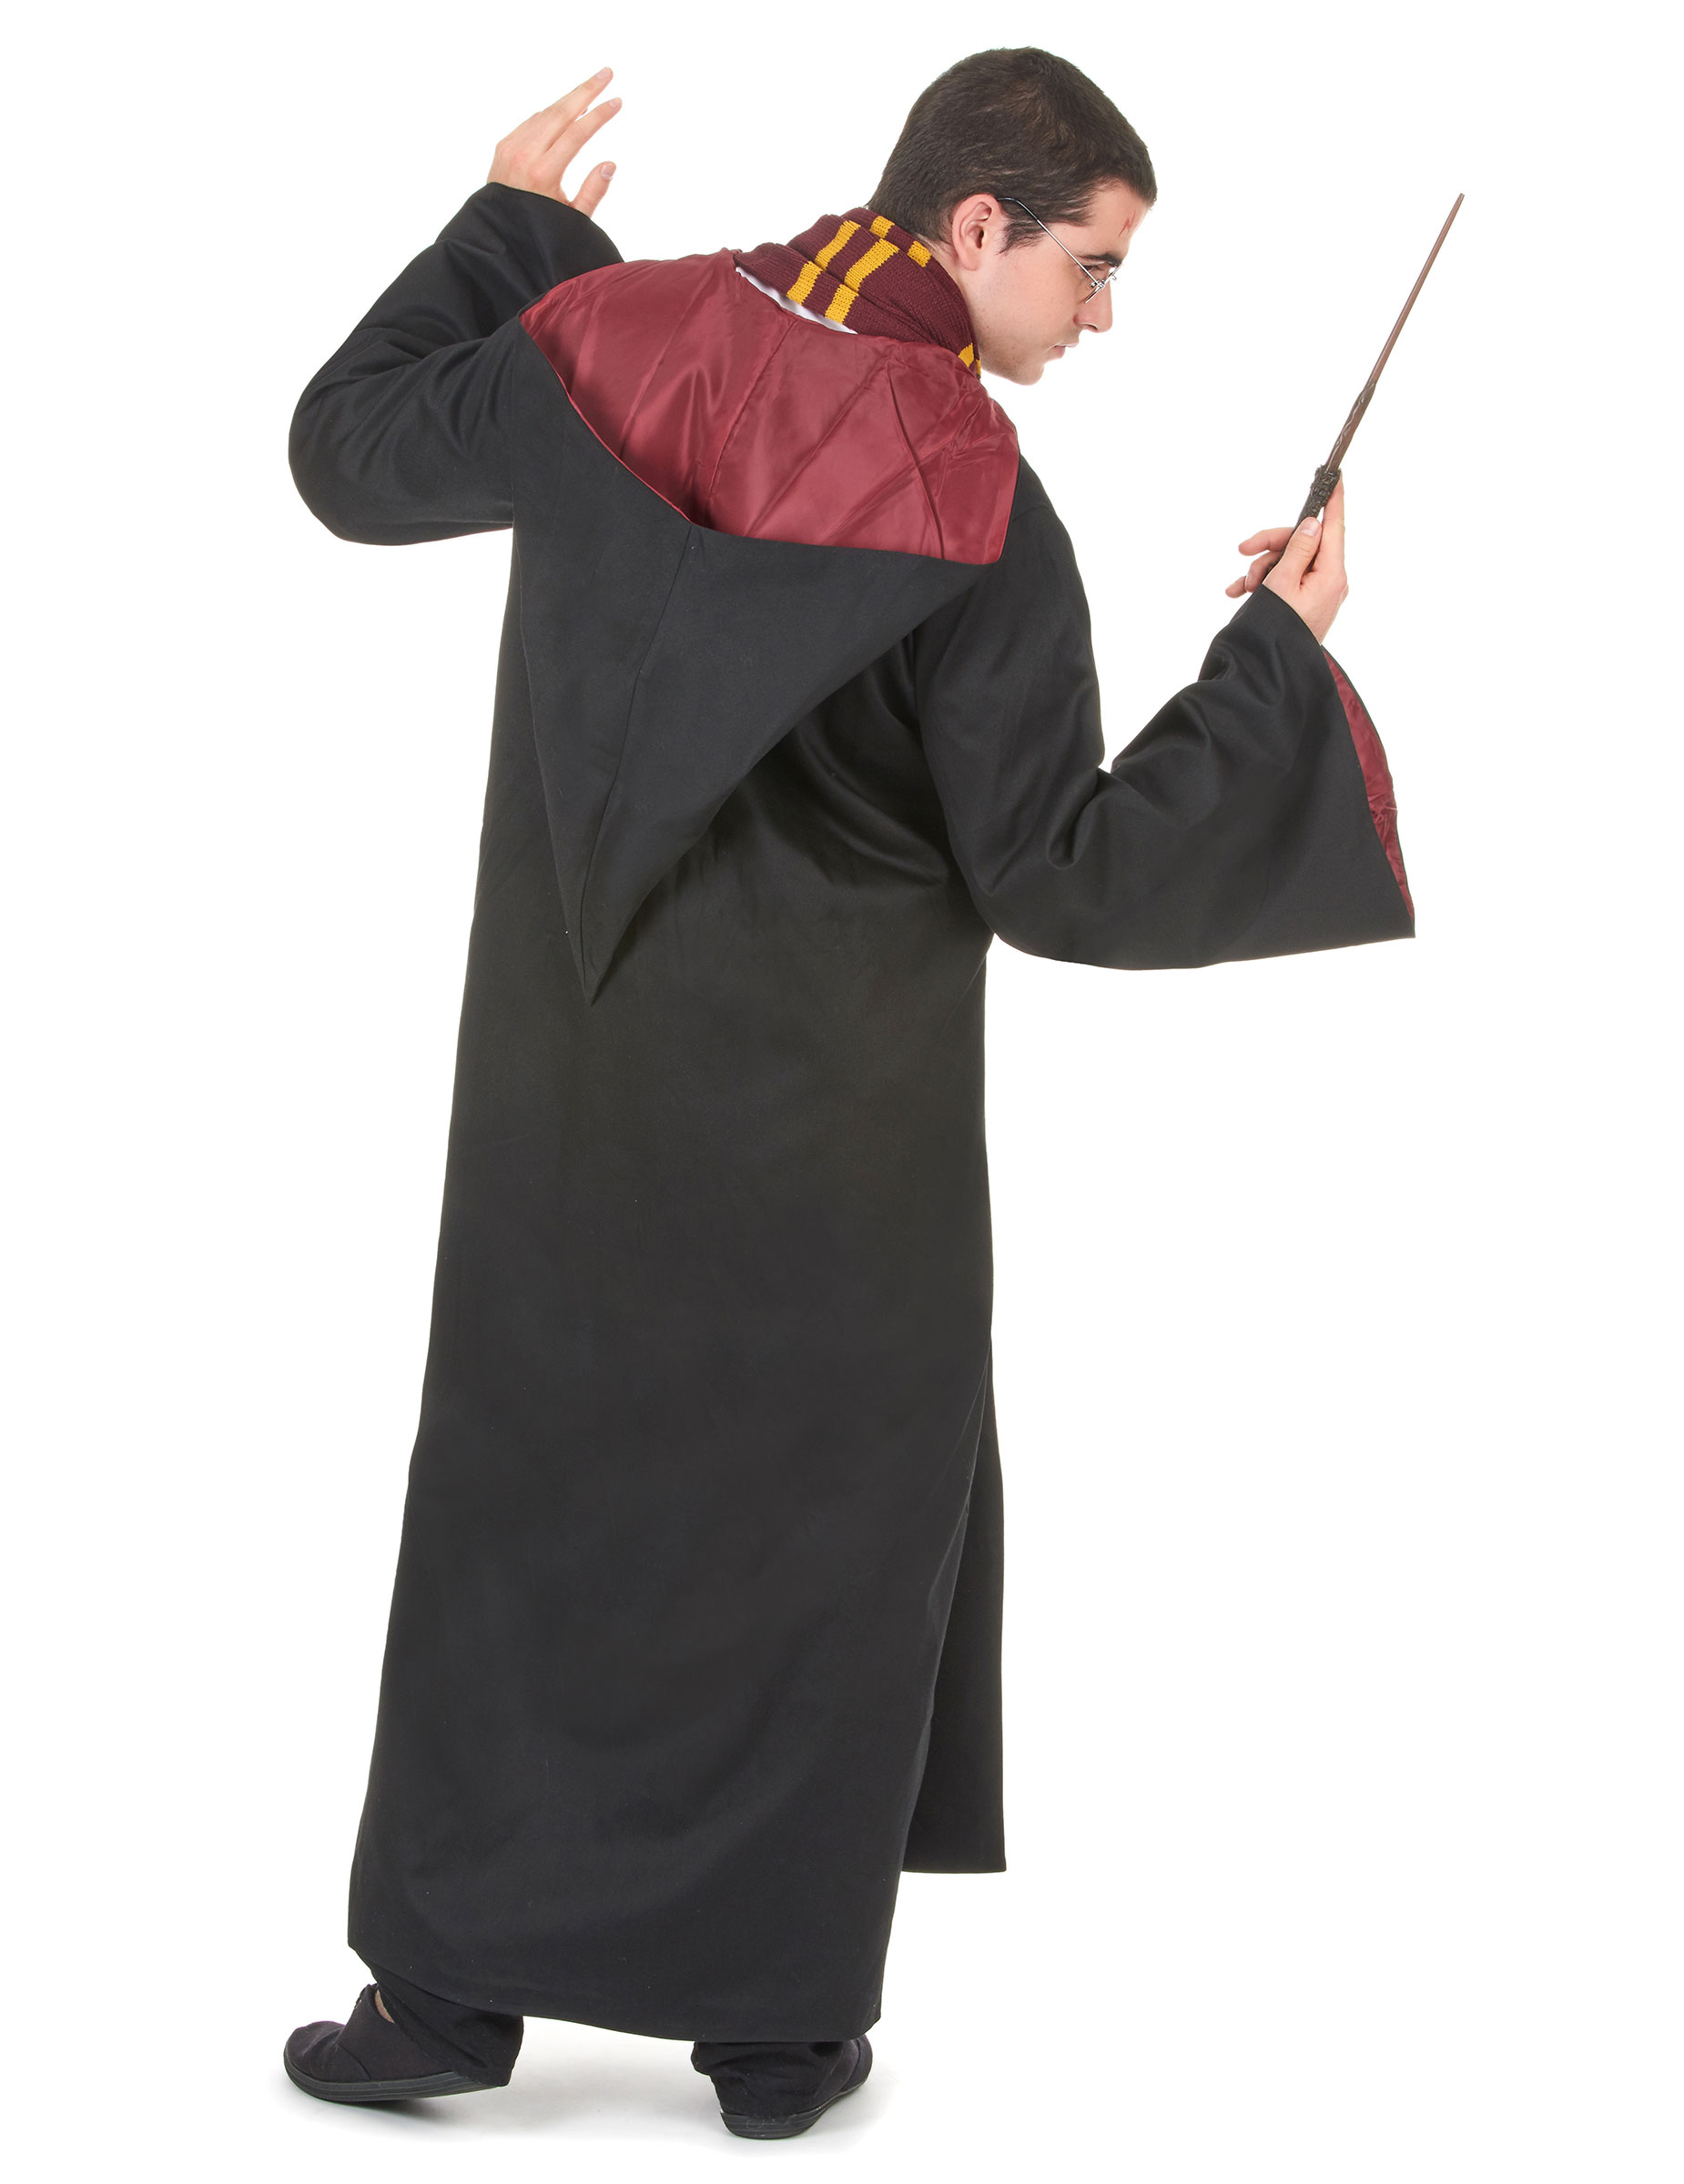 harry potter gryffindor schulrobe kost me f r erwachsene und g nstige faschingskost me vegaoo. Black Bedroom Furniture Sets. Home Design Ideas